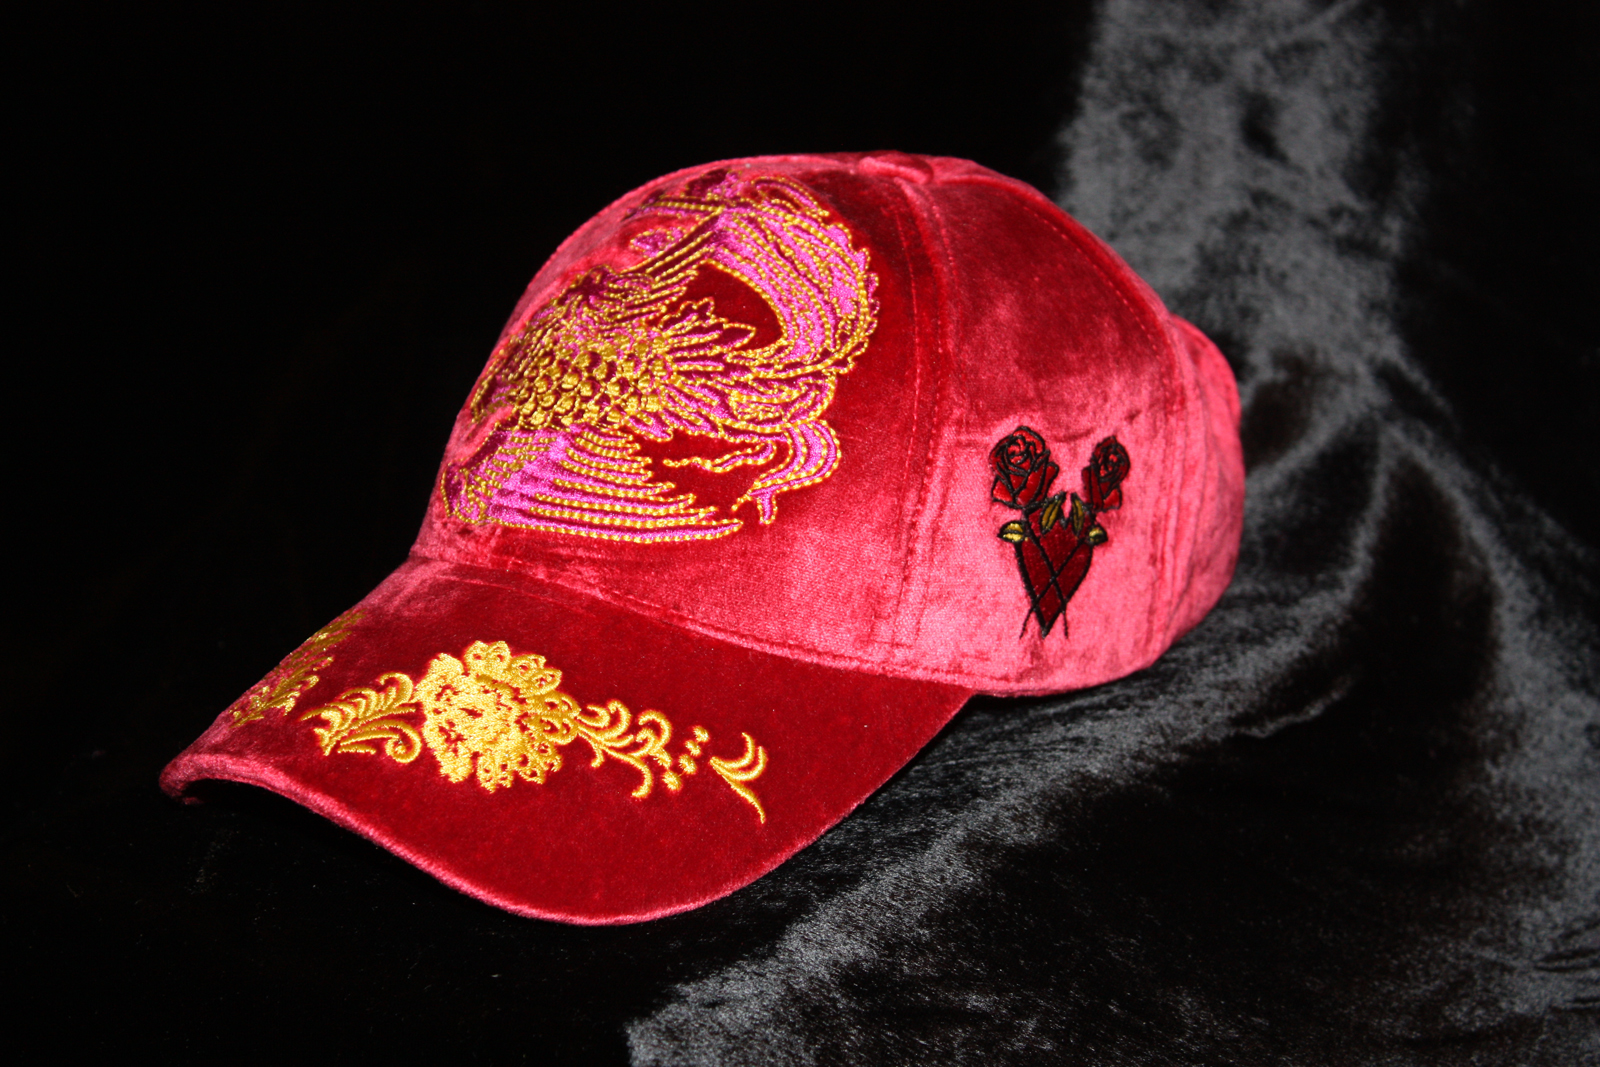 74beceebd Rebel Chic Pink Baseball Cap Shanghai Flower from Charles King Paris